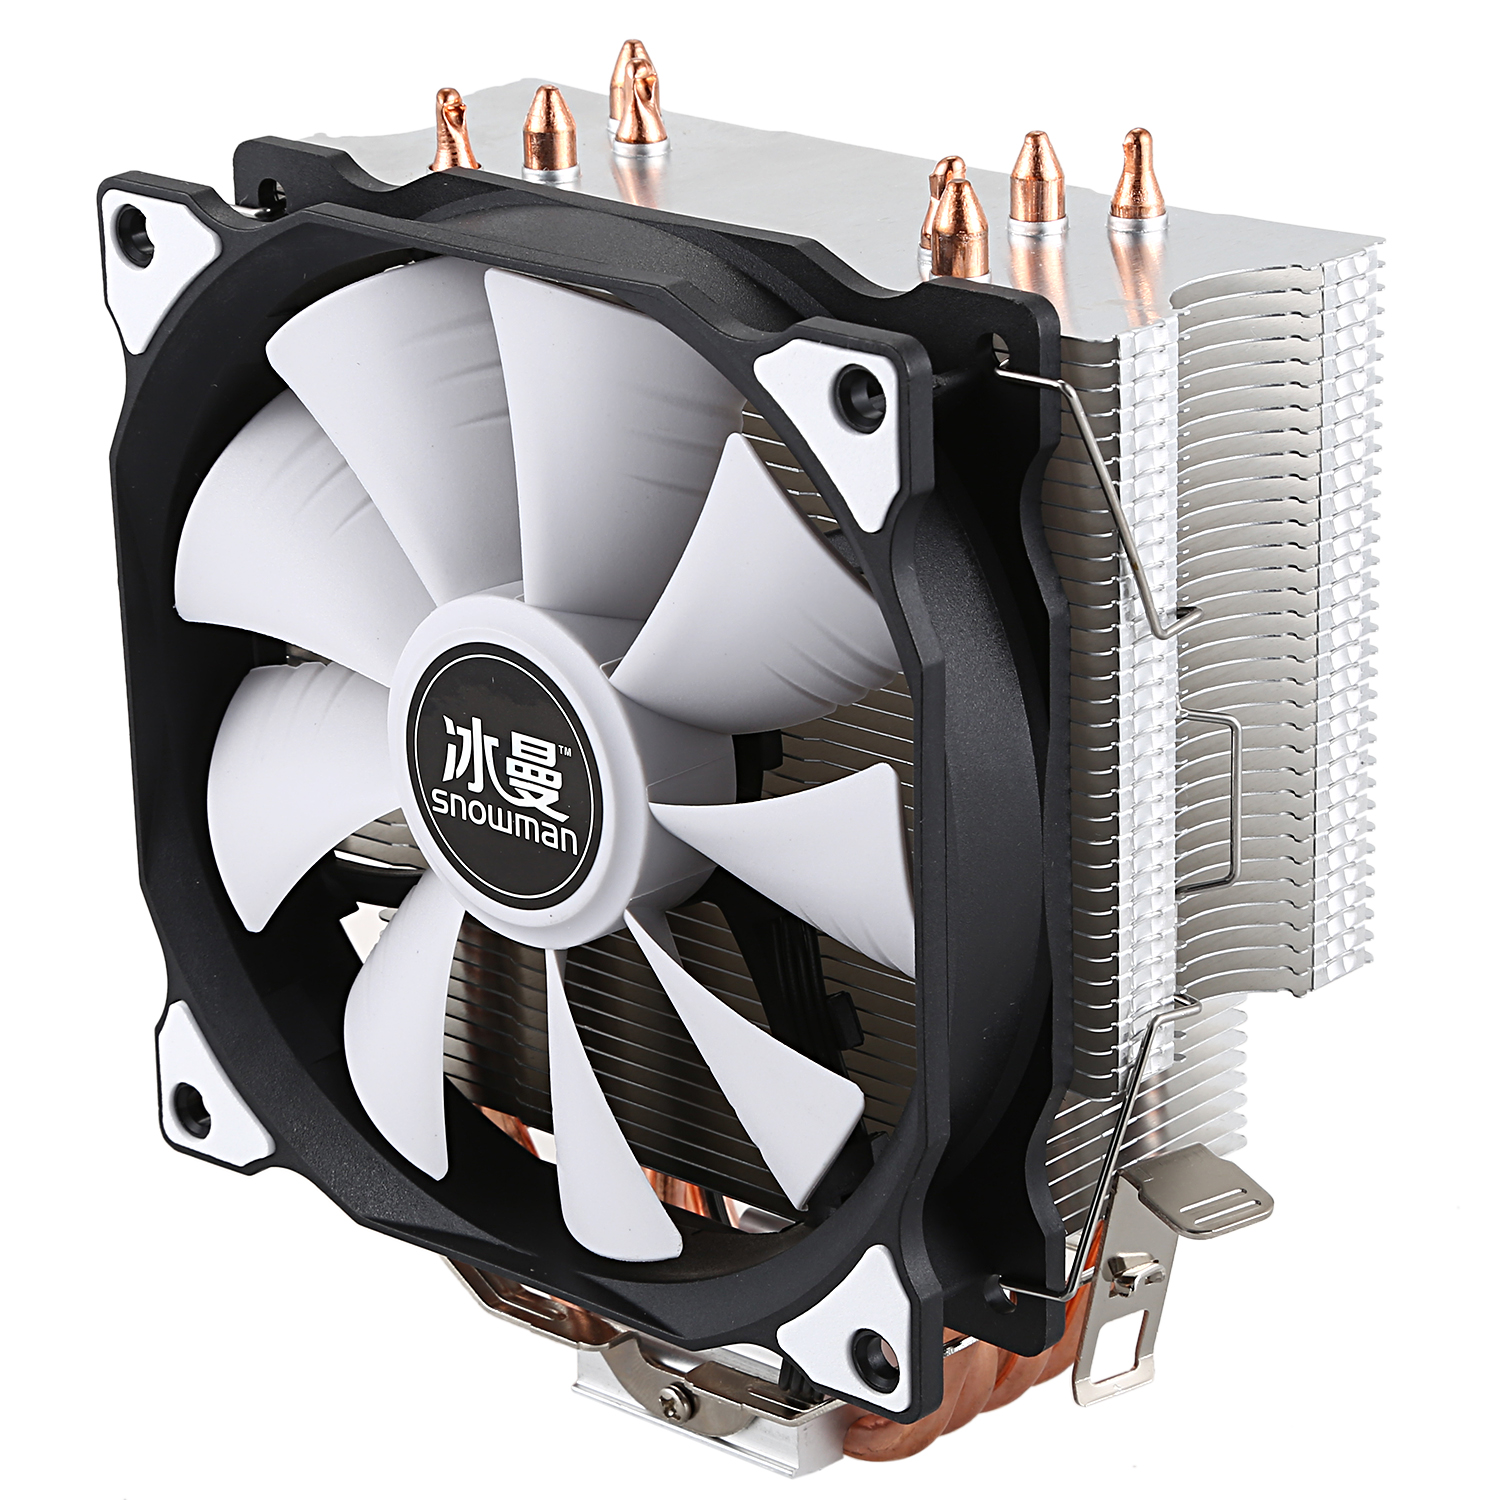 SNOWMAN CPU Cooler Master 4 Pure Copper Heat-pipes Freeze Tower Cooling System CPU Cooling Fan With PWM Fans